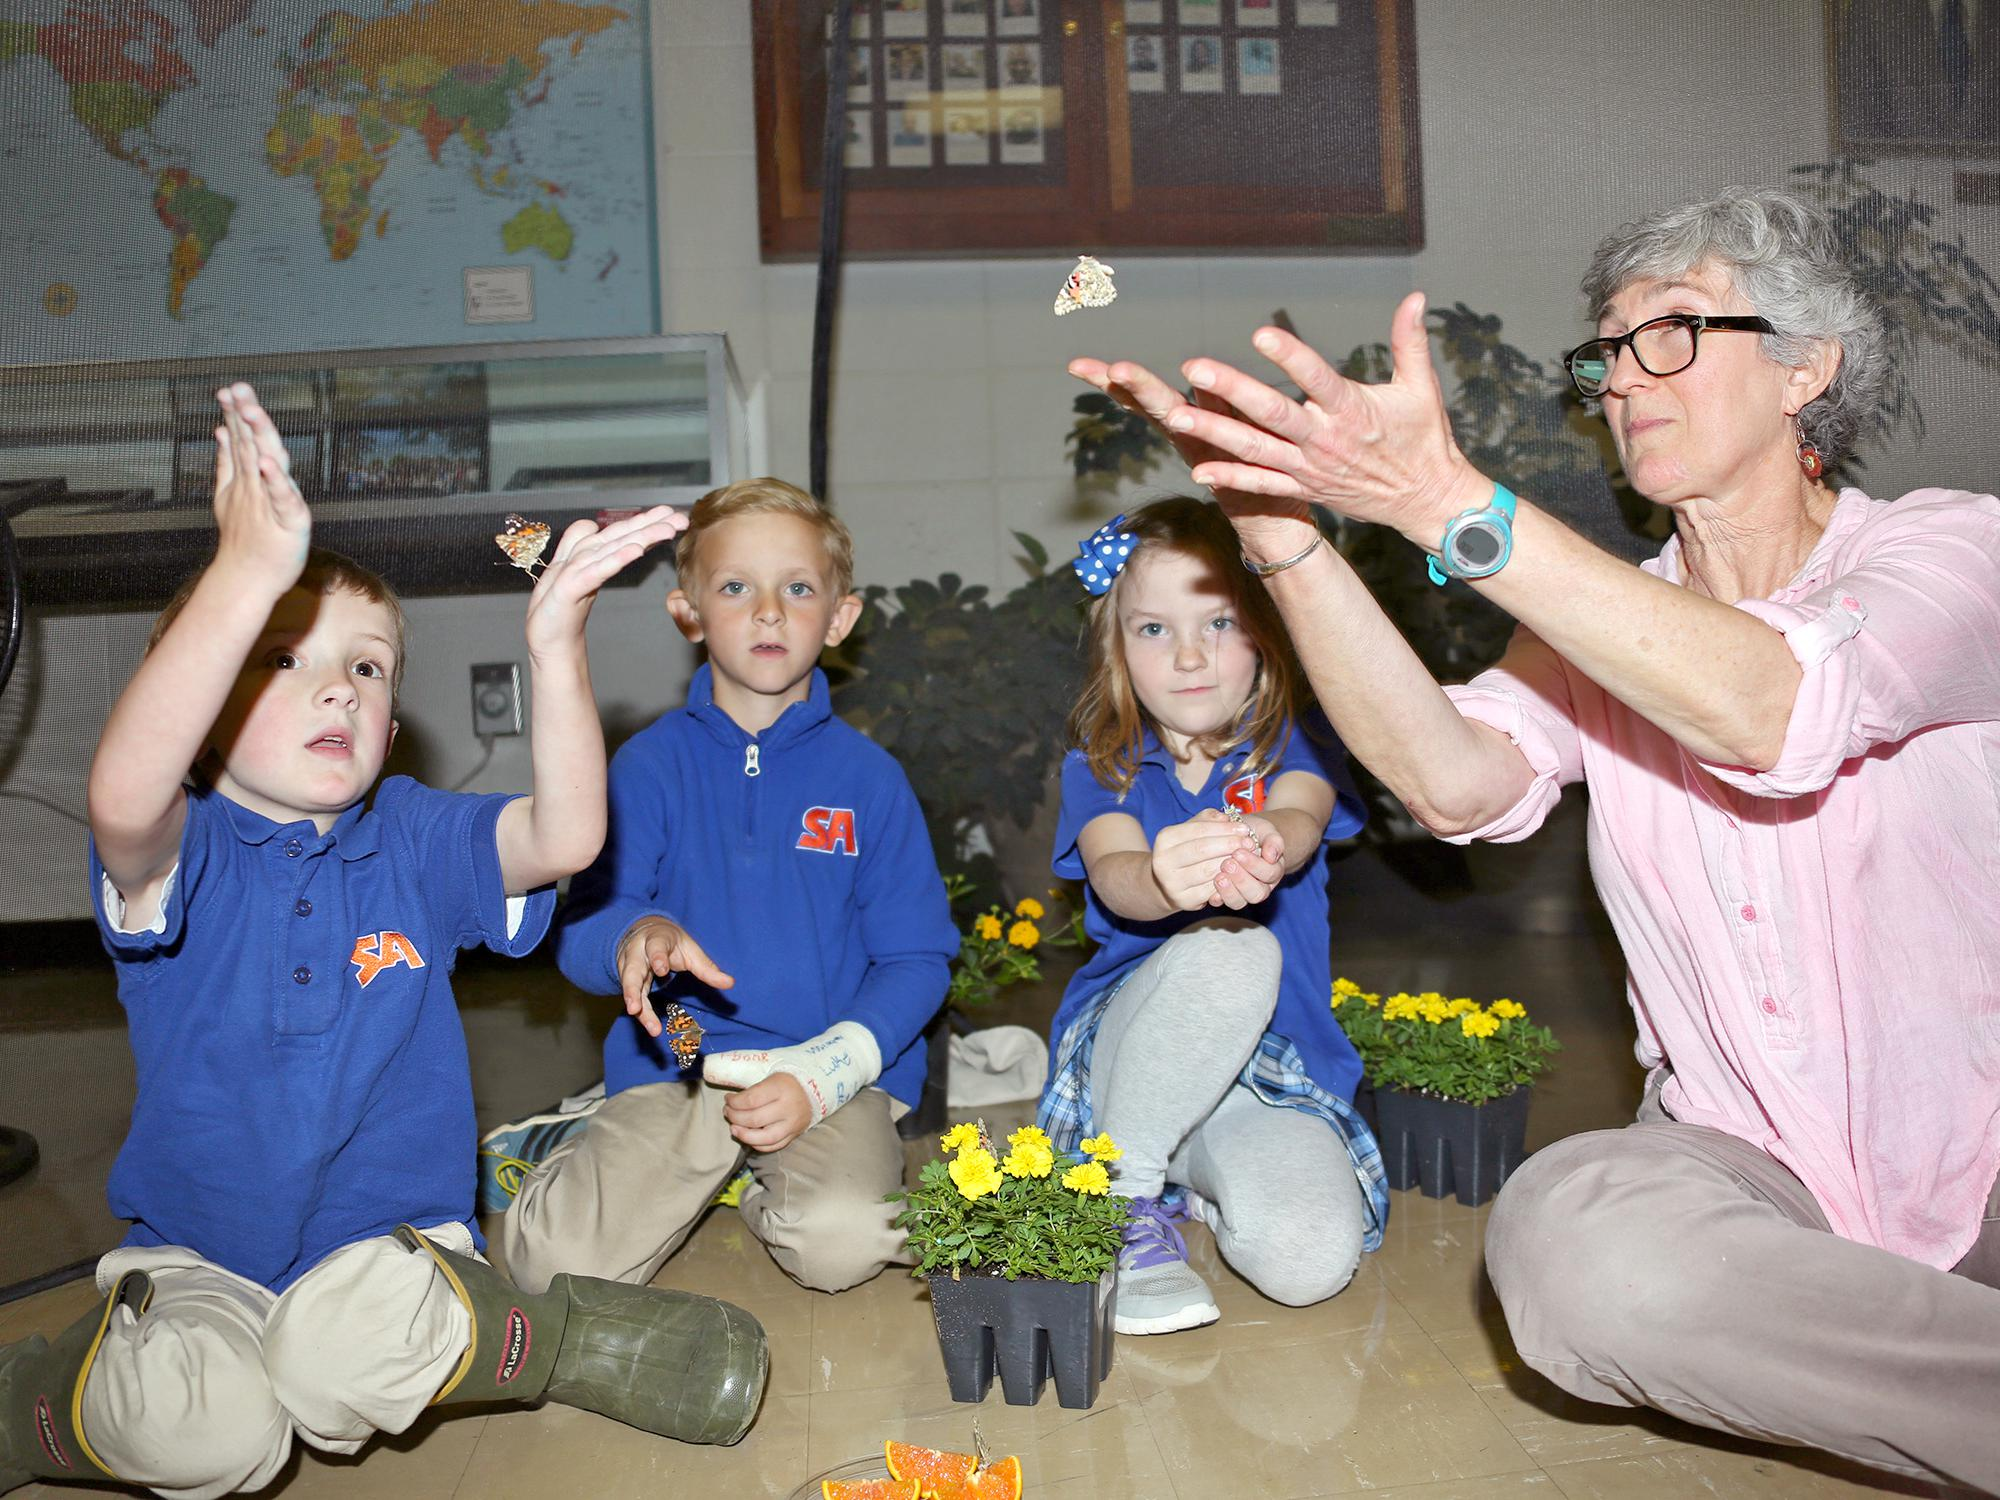 From left, kindergarteners Garrison Baker, Knox Smith and Piper Graves learn about painted lady butterflies with Lois Connington, keeper of the Insect Zoo at Mississippi State University's Clay Lyle Entomology Building on Thursday, April 14, 2016 in Starkville, Miss. (Photo by MSU Extension Service/Kat Lawrence)